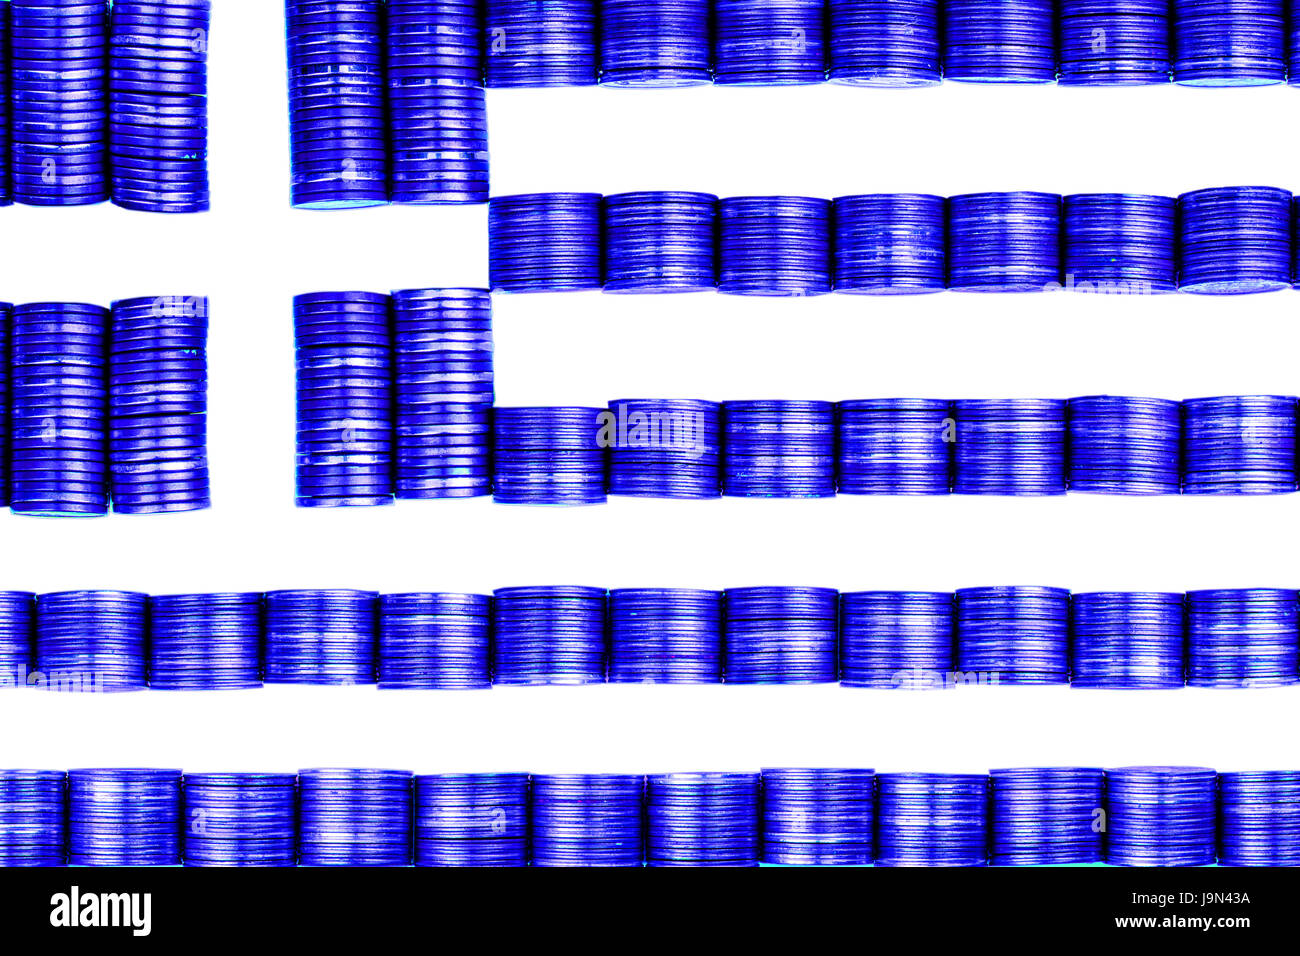 greek money flag constructet from stacks of coins - Stock Image